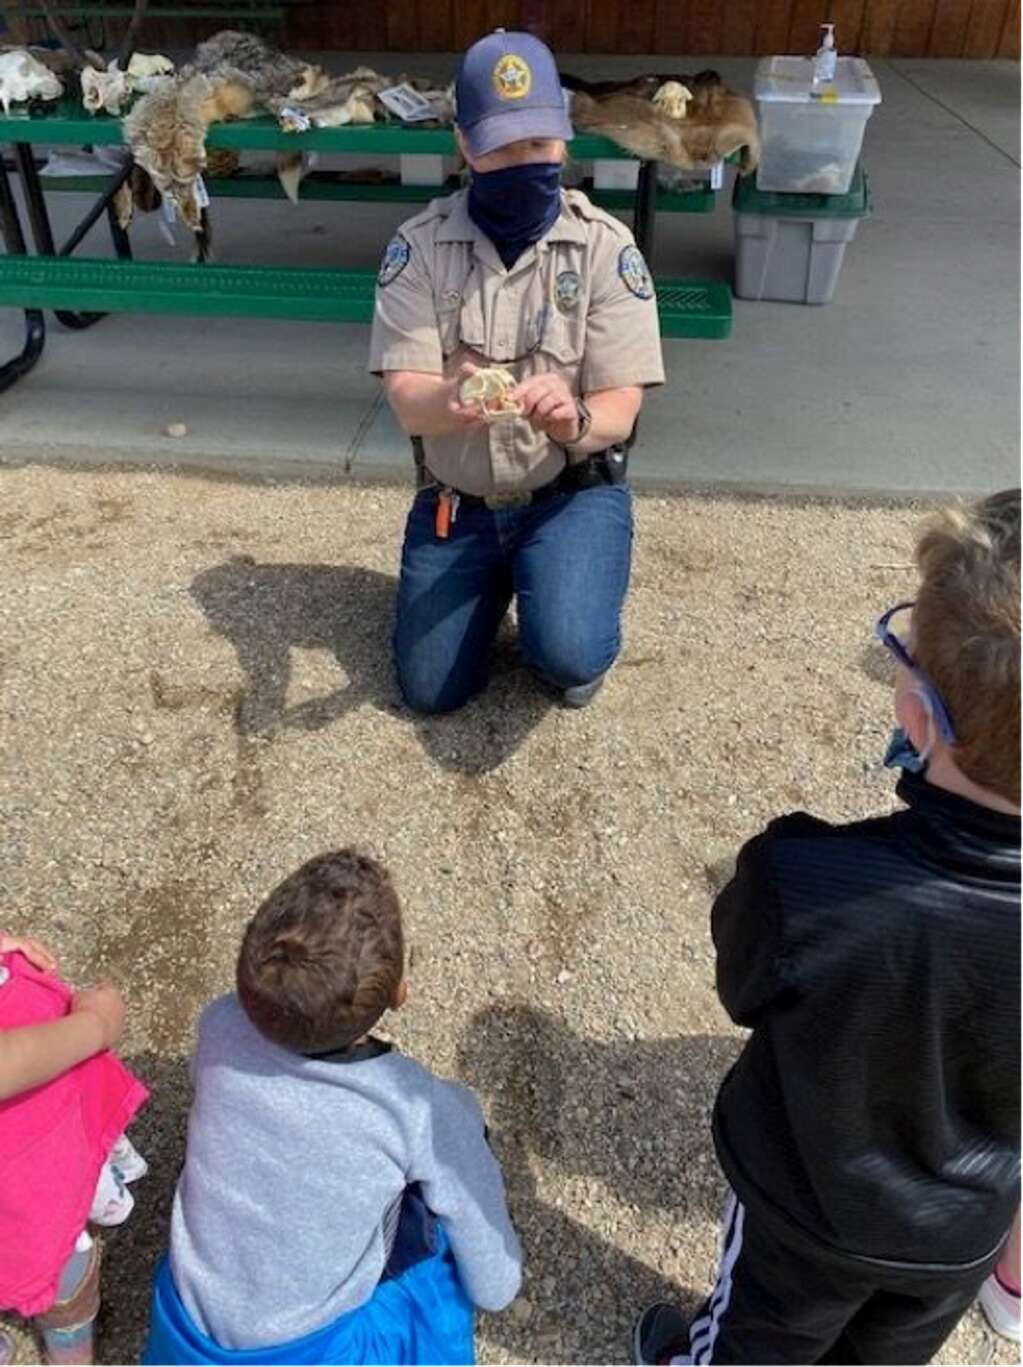 The field trip was a great hands on experience for Granby Elementary kindergartners.